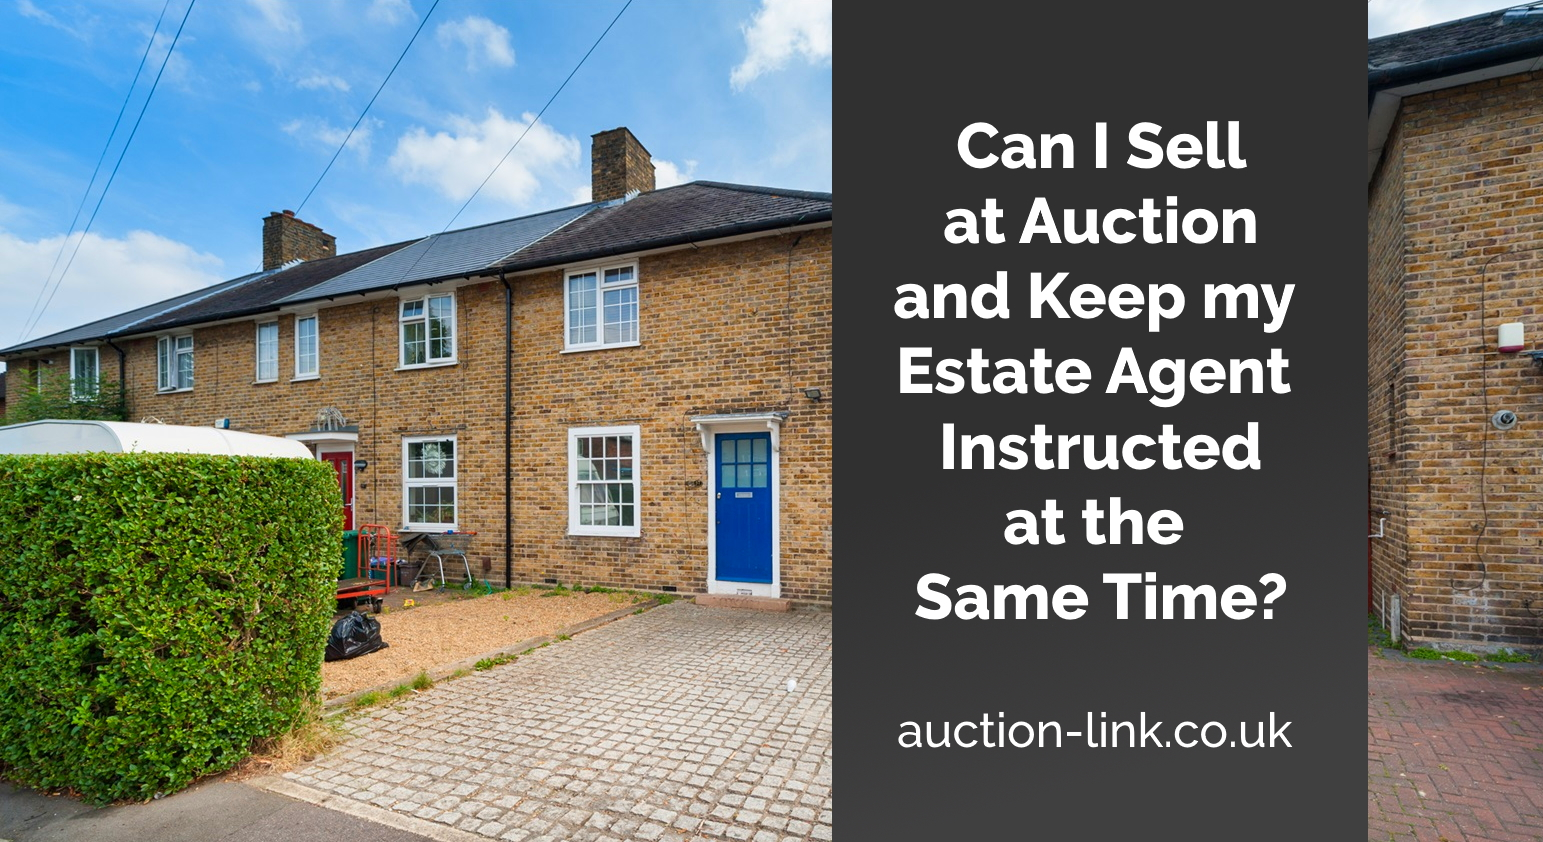 Can I Sell at Auction and Keep my Estate Agent Instructed Too?